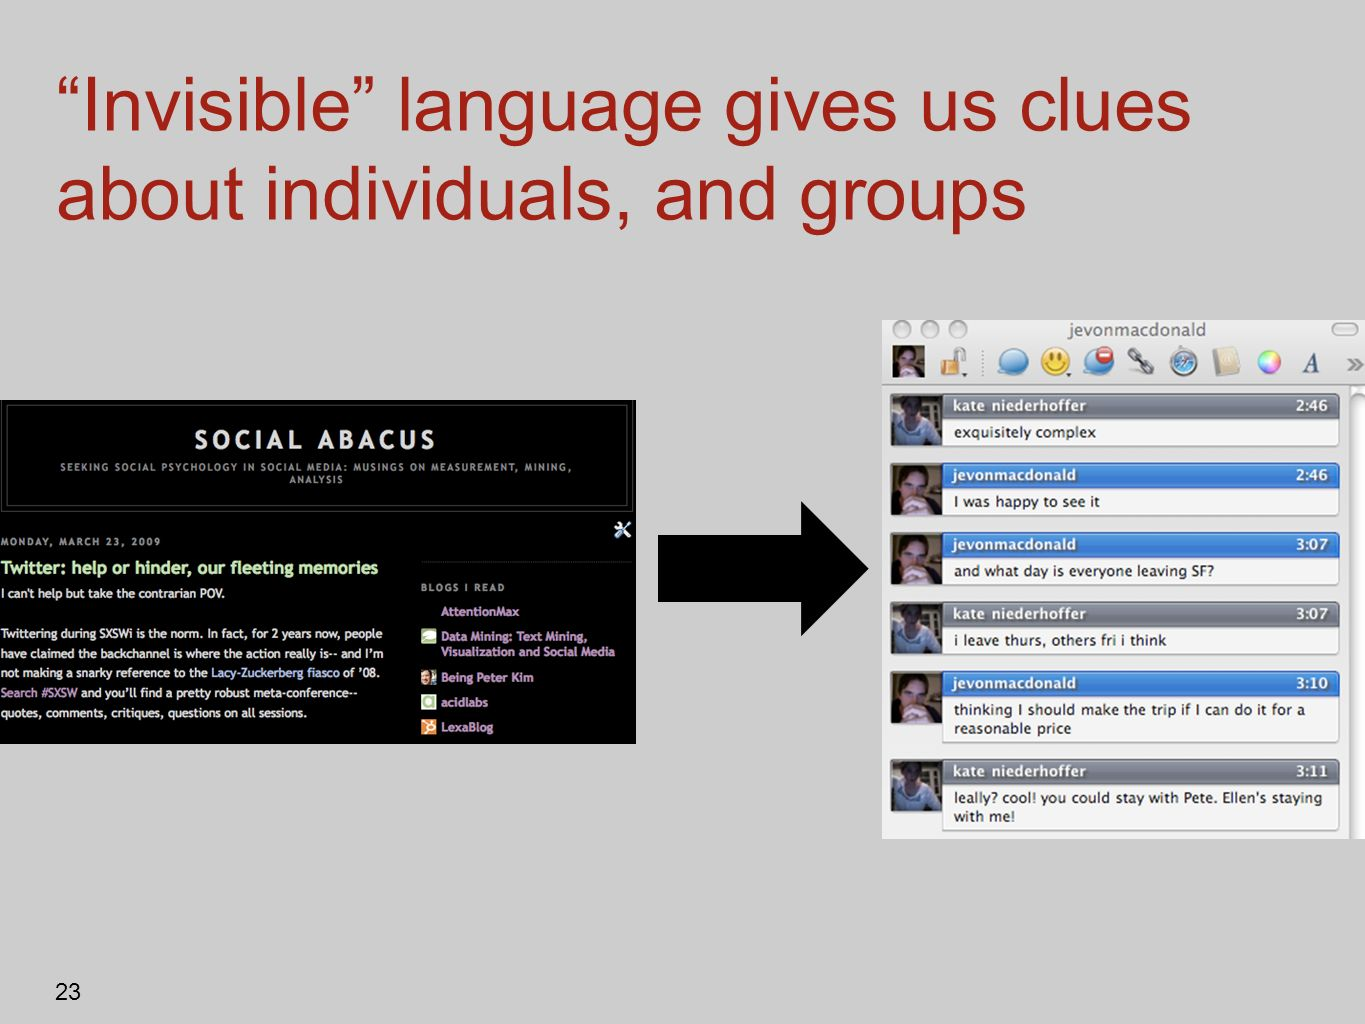 Invisible language gives us clues about individuals, and groups